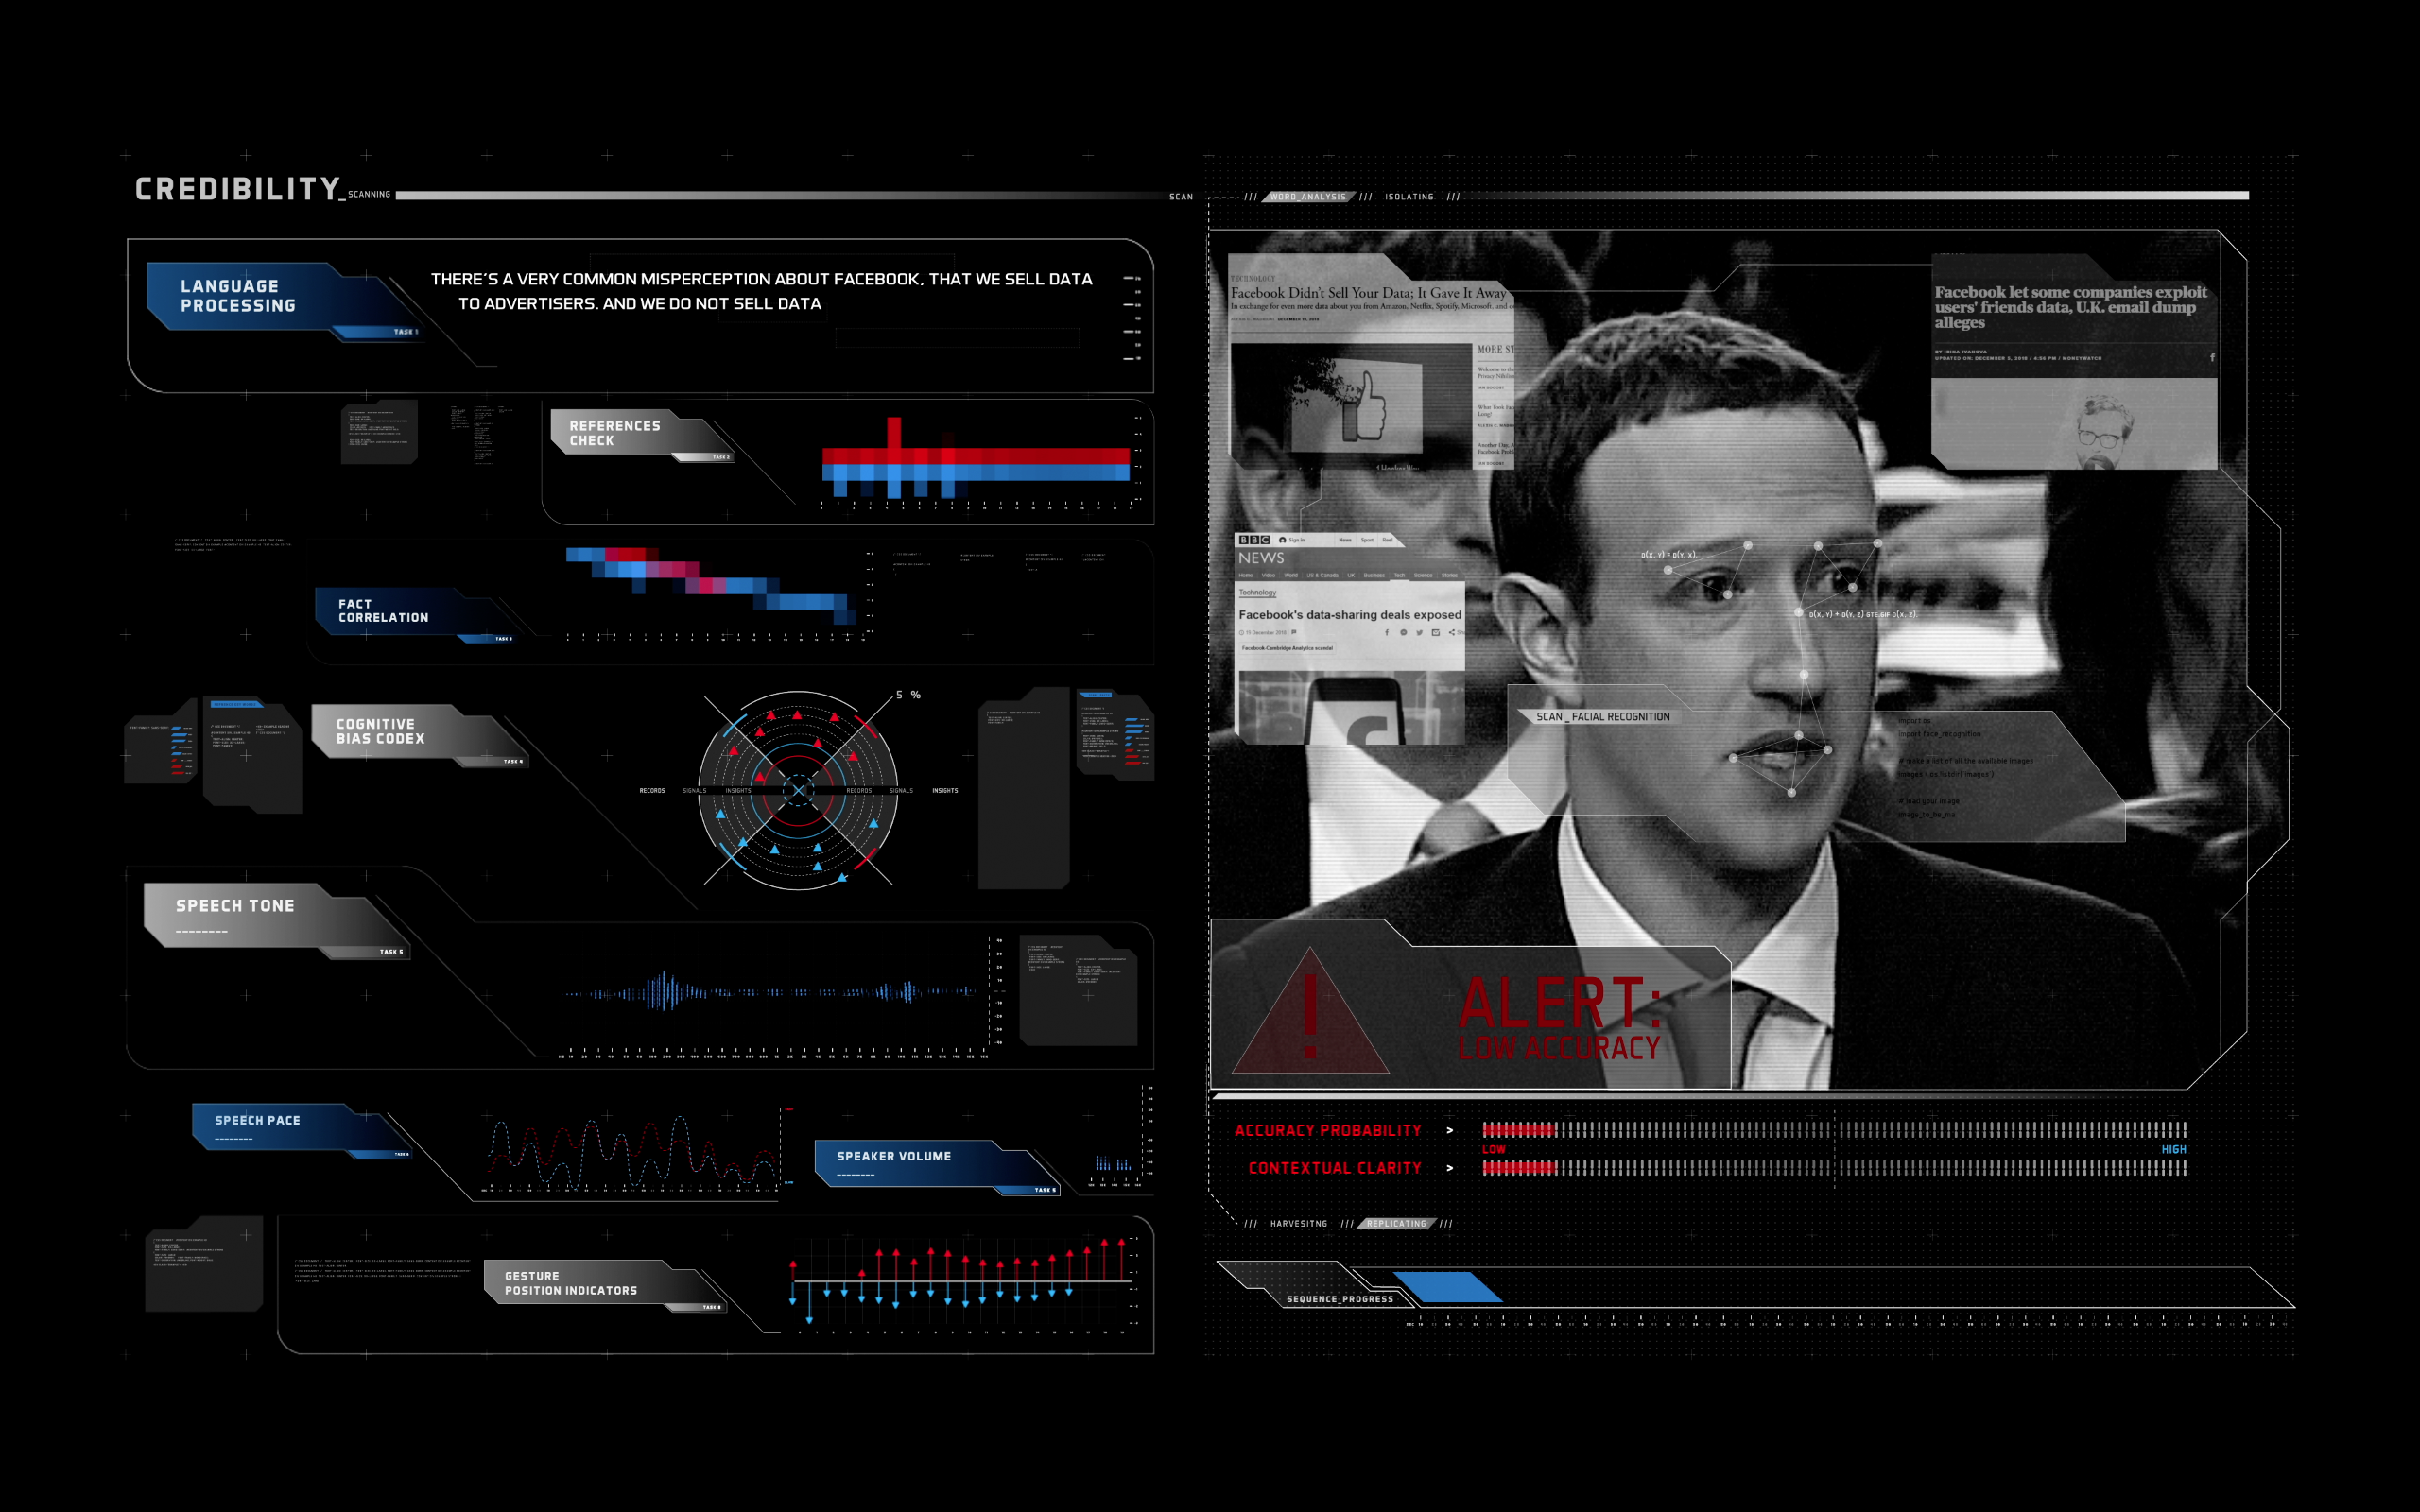 Mark Zuckerburg speech analyzed by the Credibility algorithm